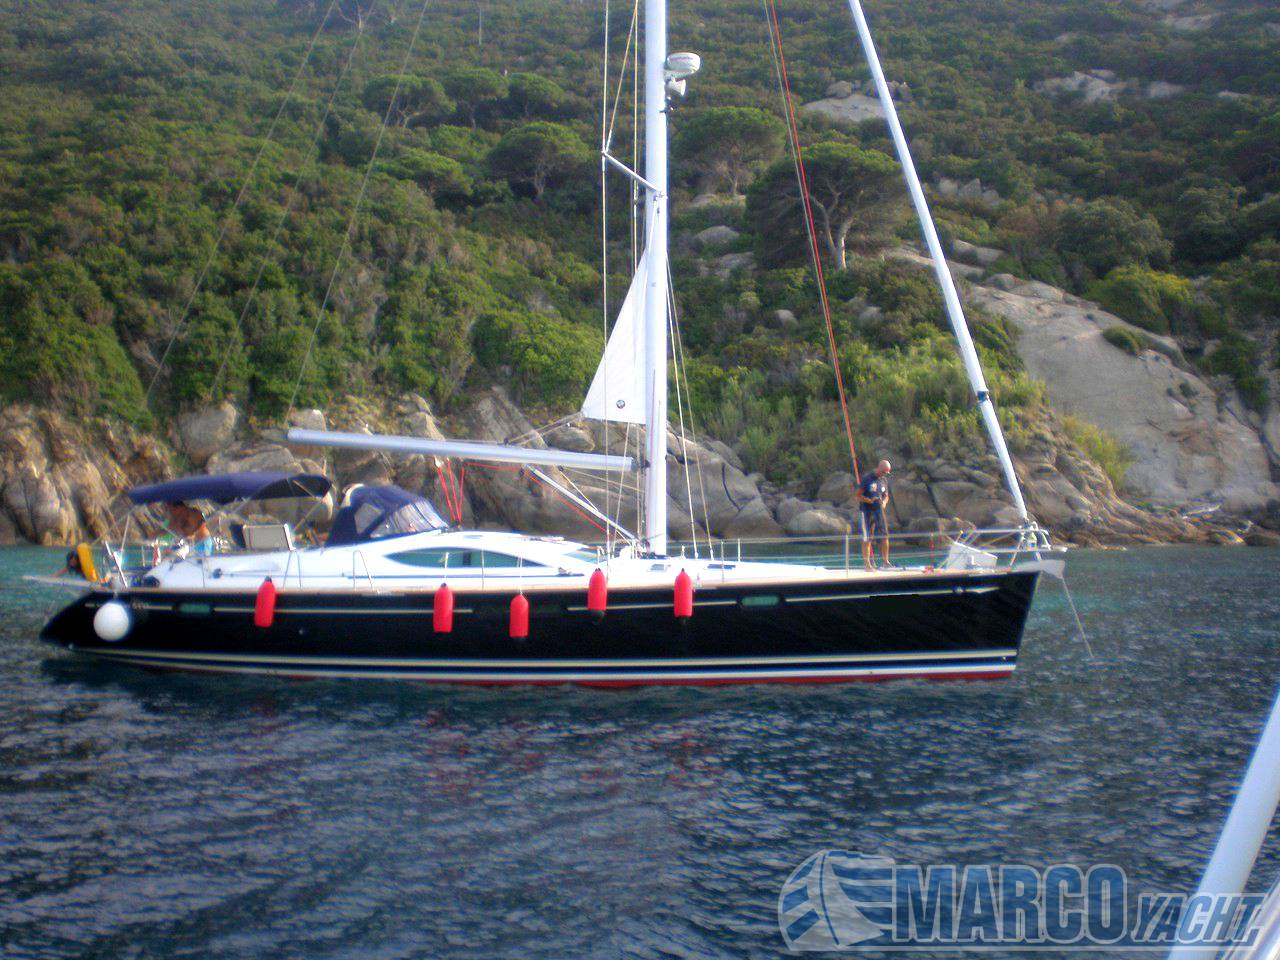 Jeanneau Sun odyssey 54 ds Sailing boat used for sale